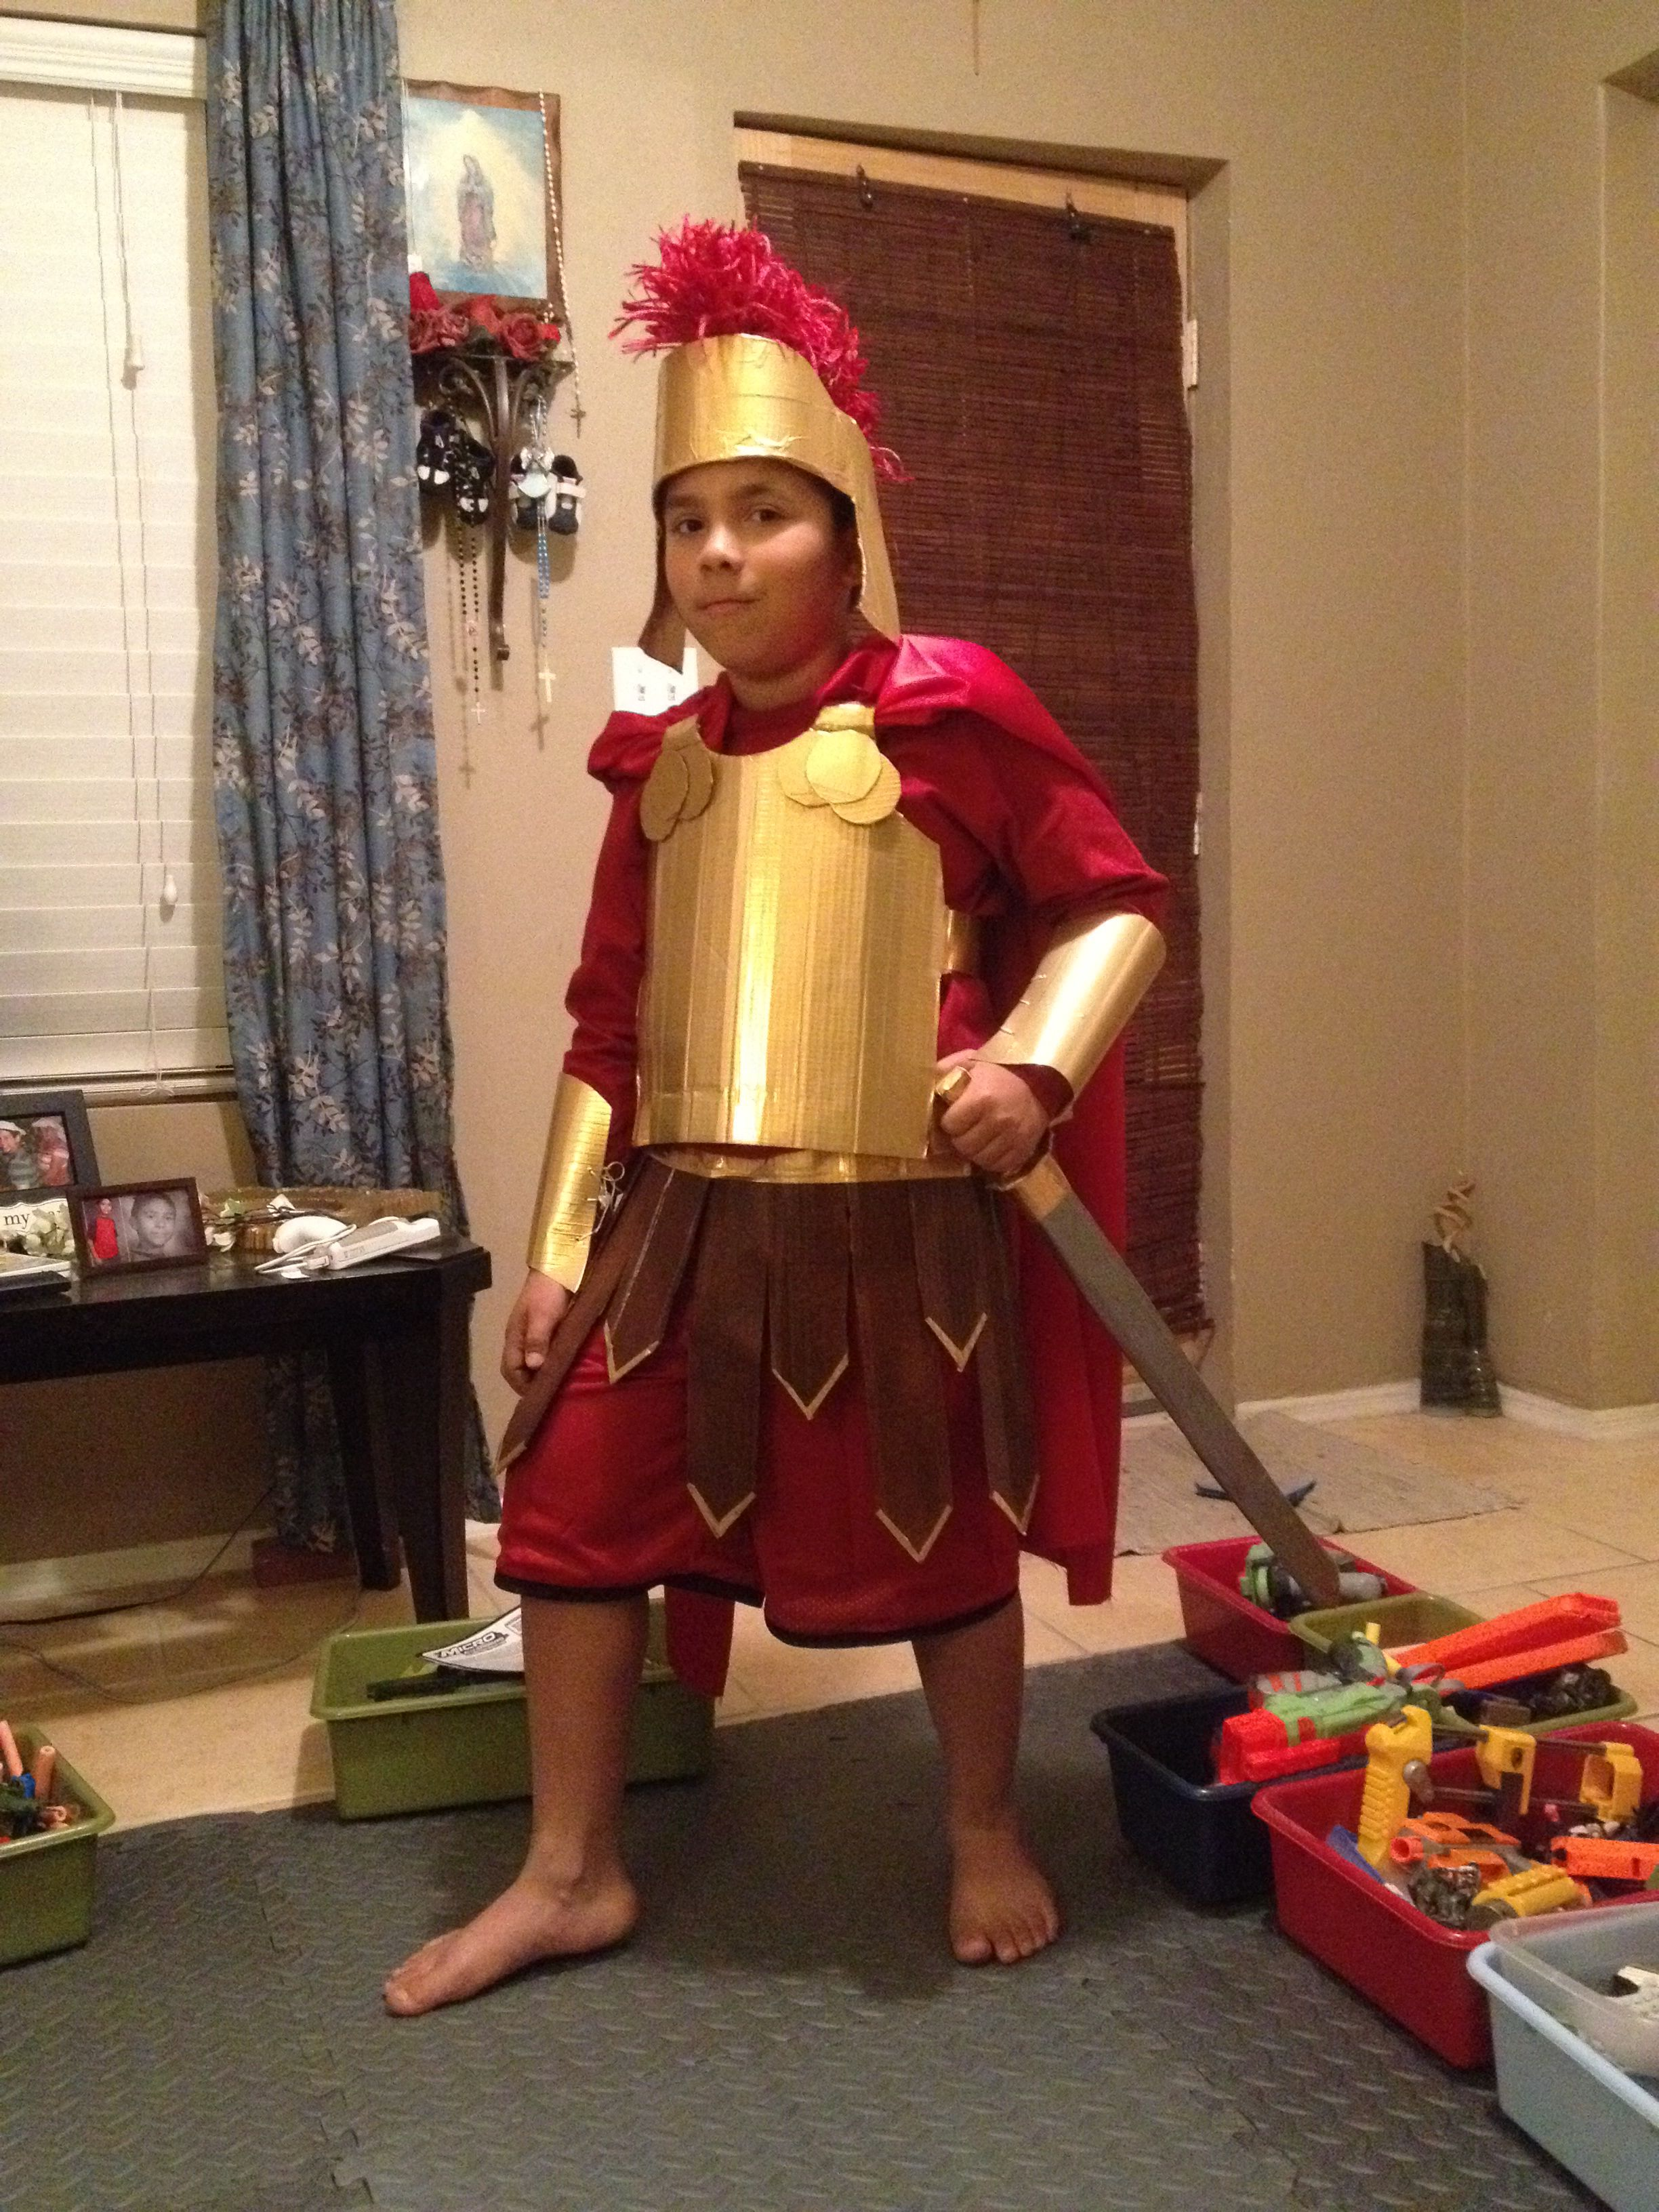 Diy duct tape Roman costume gold duck tape and cardboard.  sc 1 st  Pinterest & Diy duct tape Roman costume gold duck tape and cardboard. | Diy ...